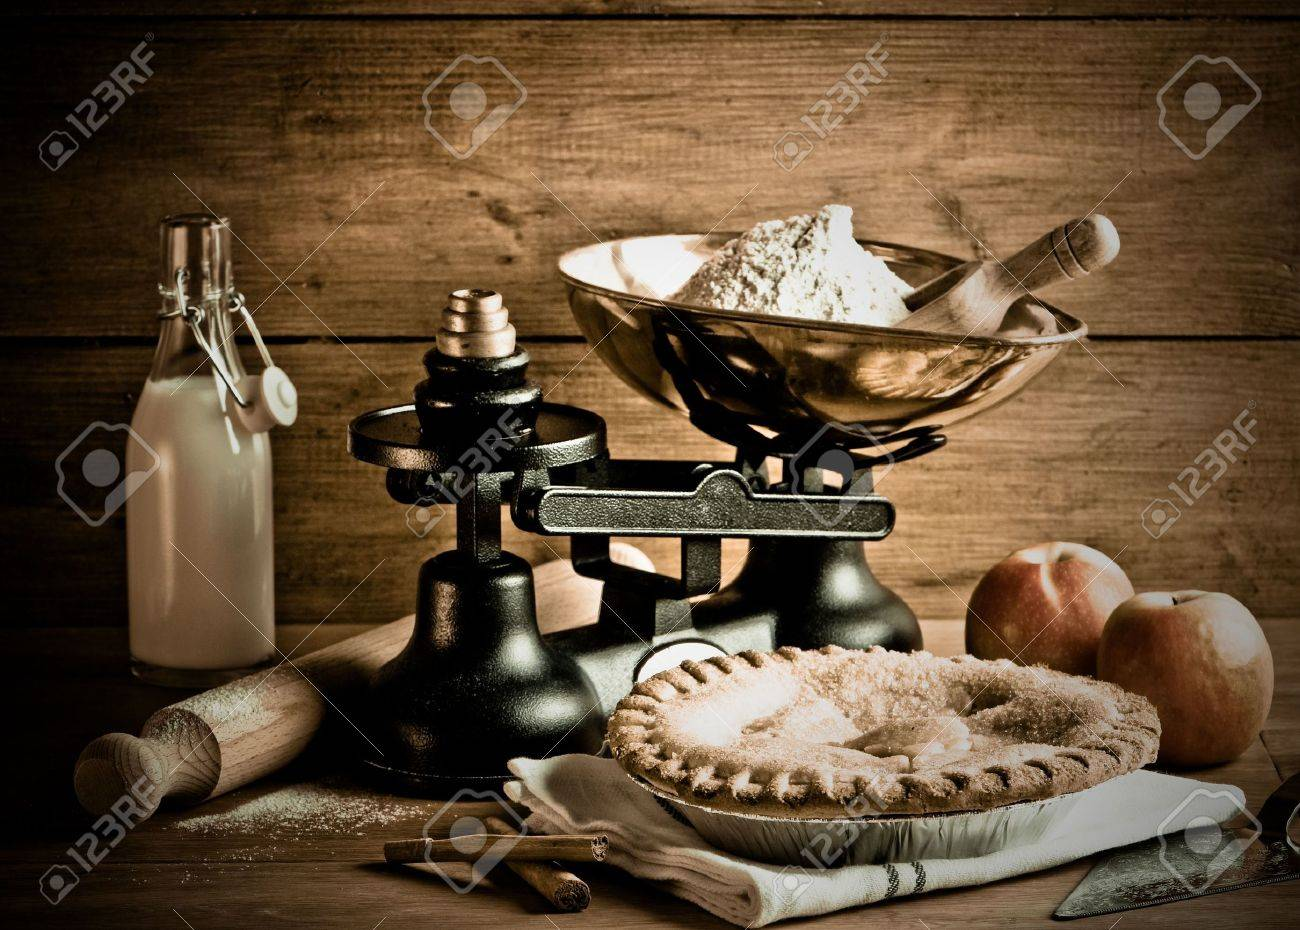 Old fashioned apple pie dessert with antique weighing scales Stock Photo - 6574961